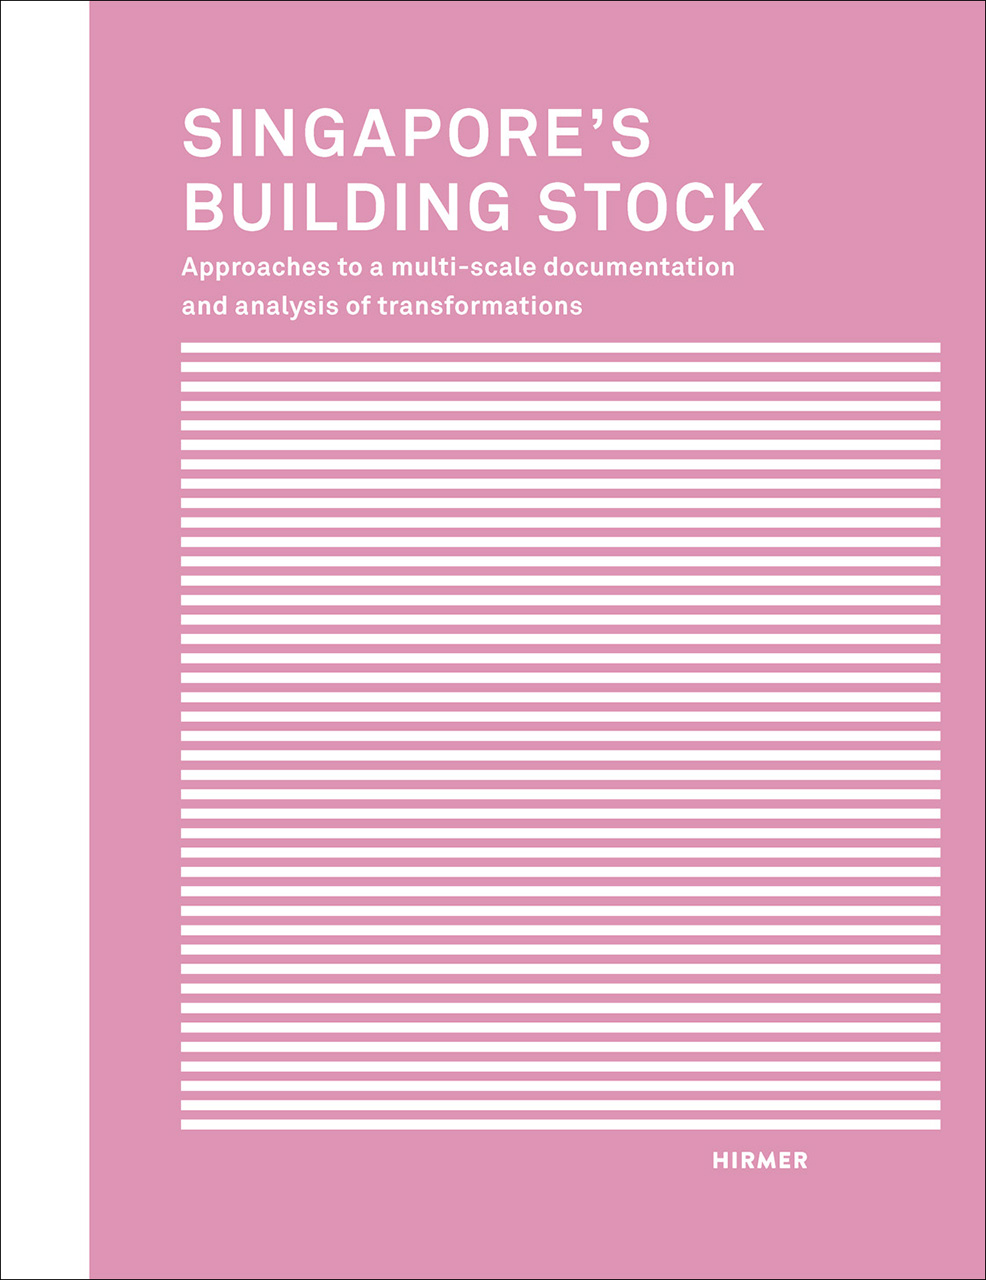 Singapore's Building Stock: Approaches to a Multi-Scale Documentation and Analysis of Transformations